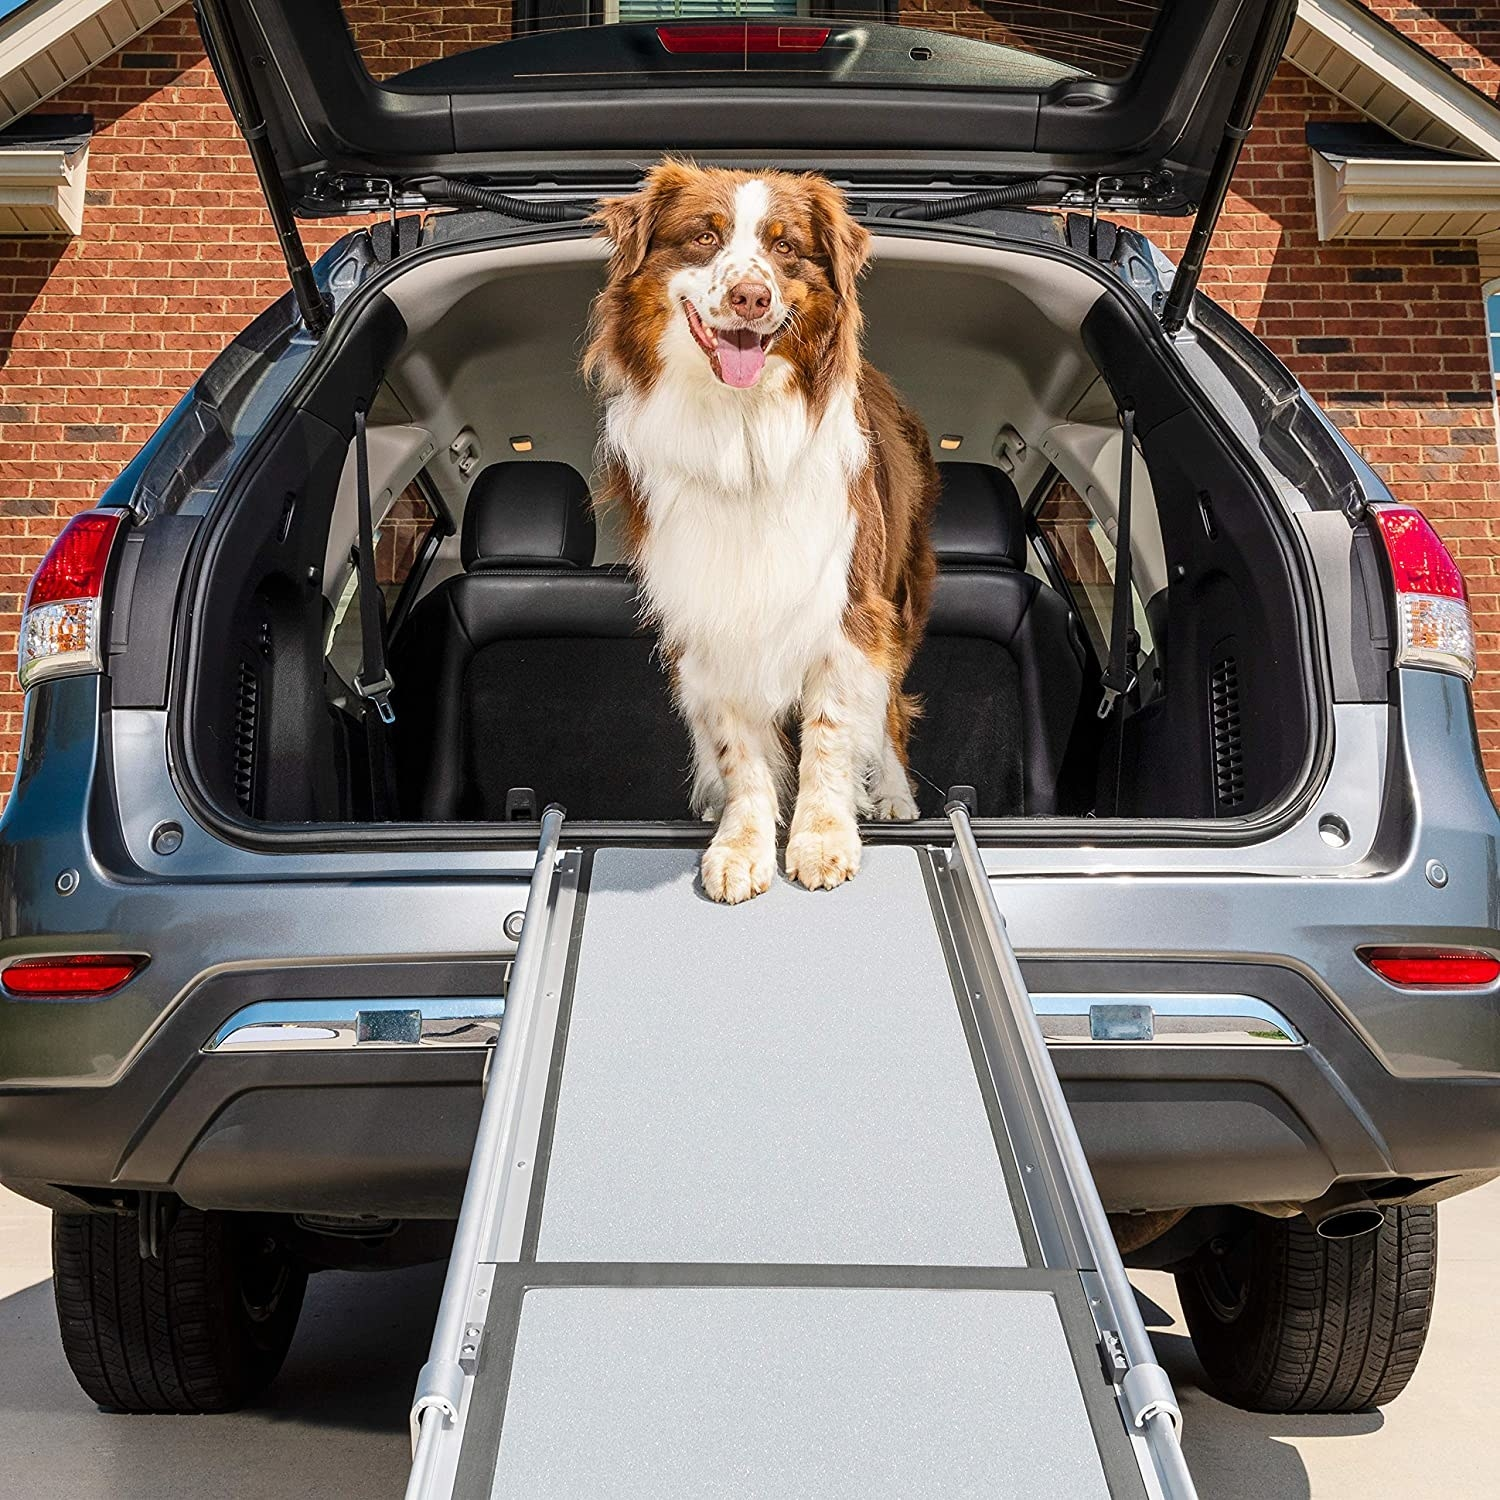 Dog standing in the back of a car at the top of a ramp